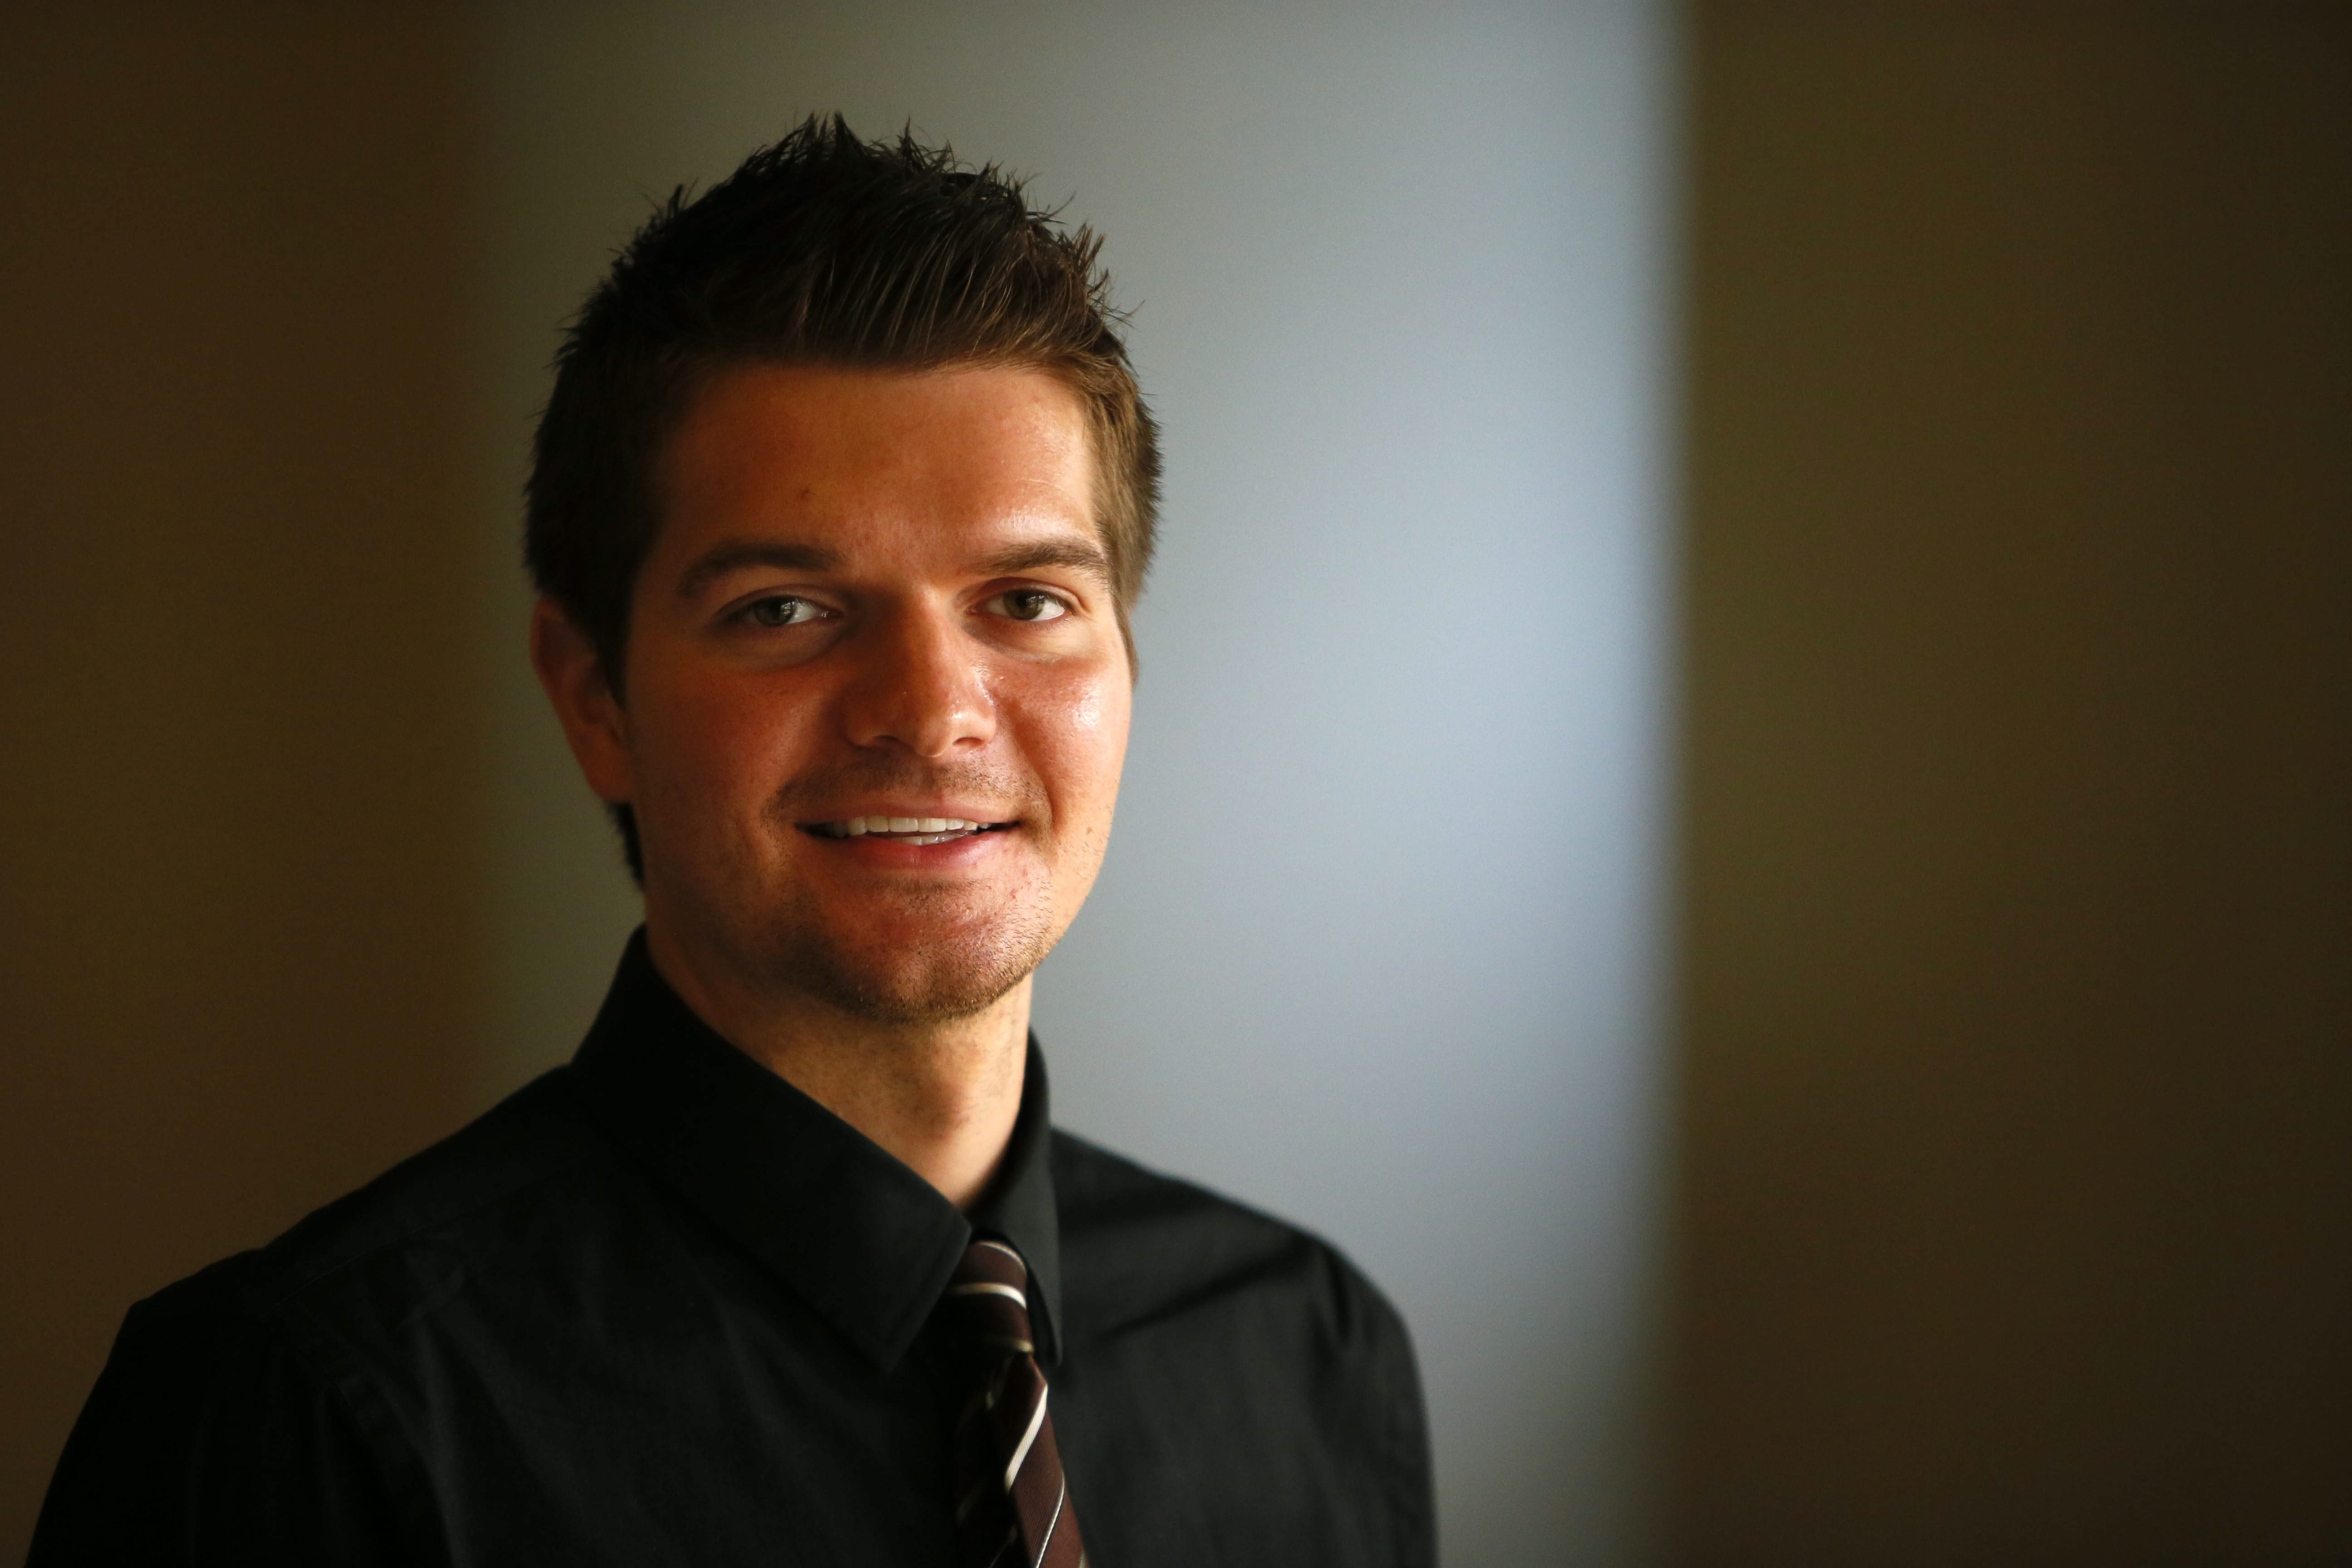 Ryan Daley of UNYTS is one of the co-founders of the new Young Nonprofit Professionals Network.